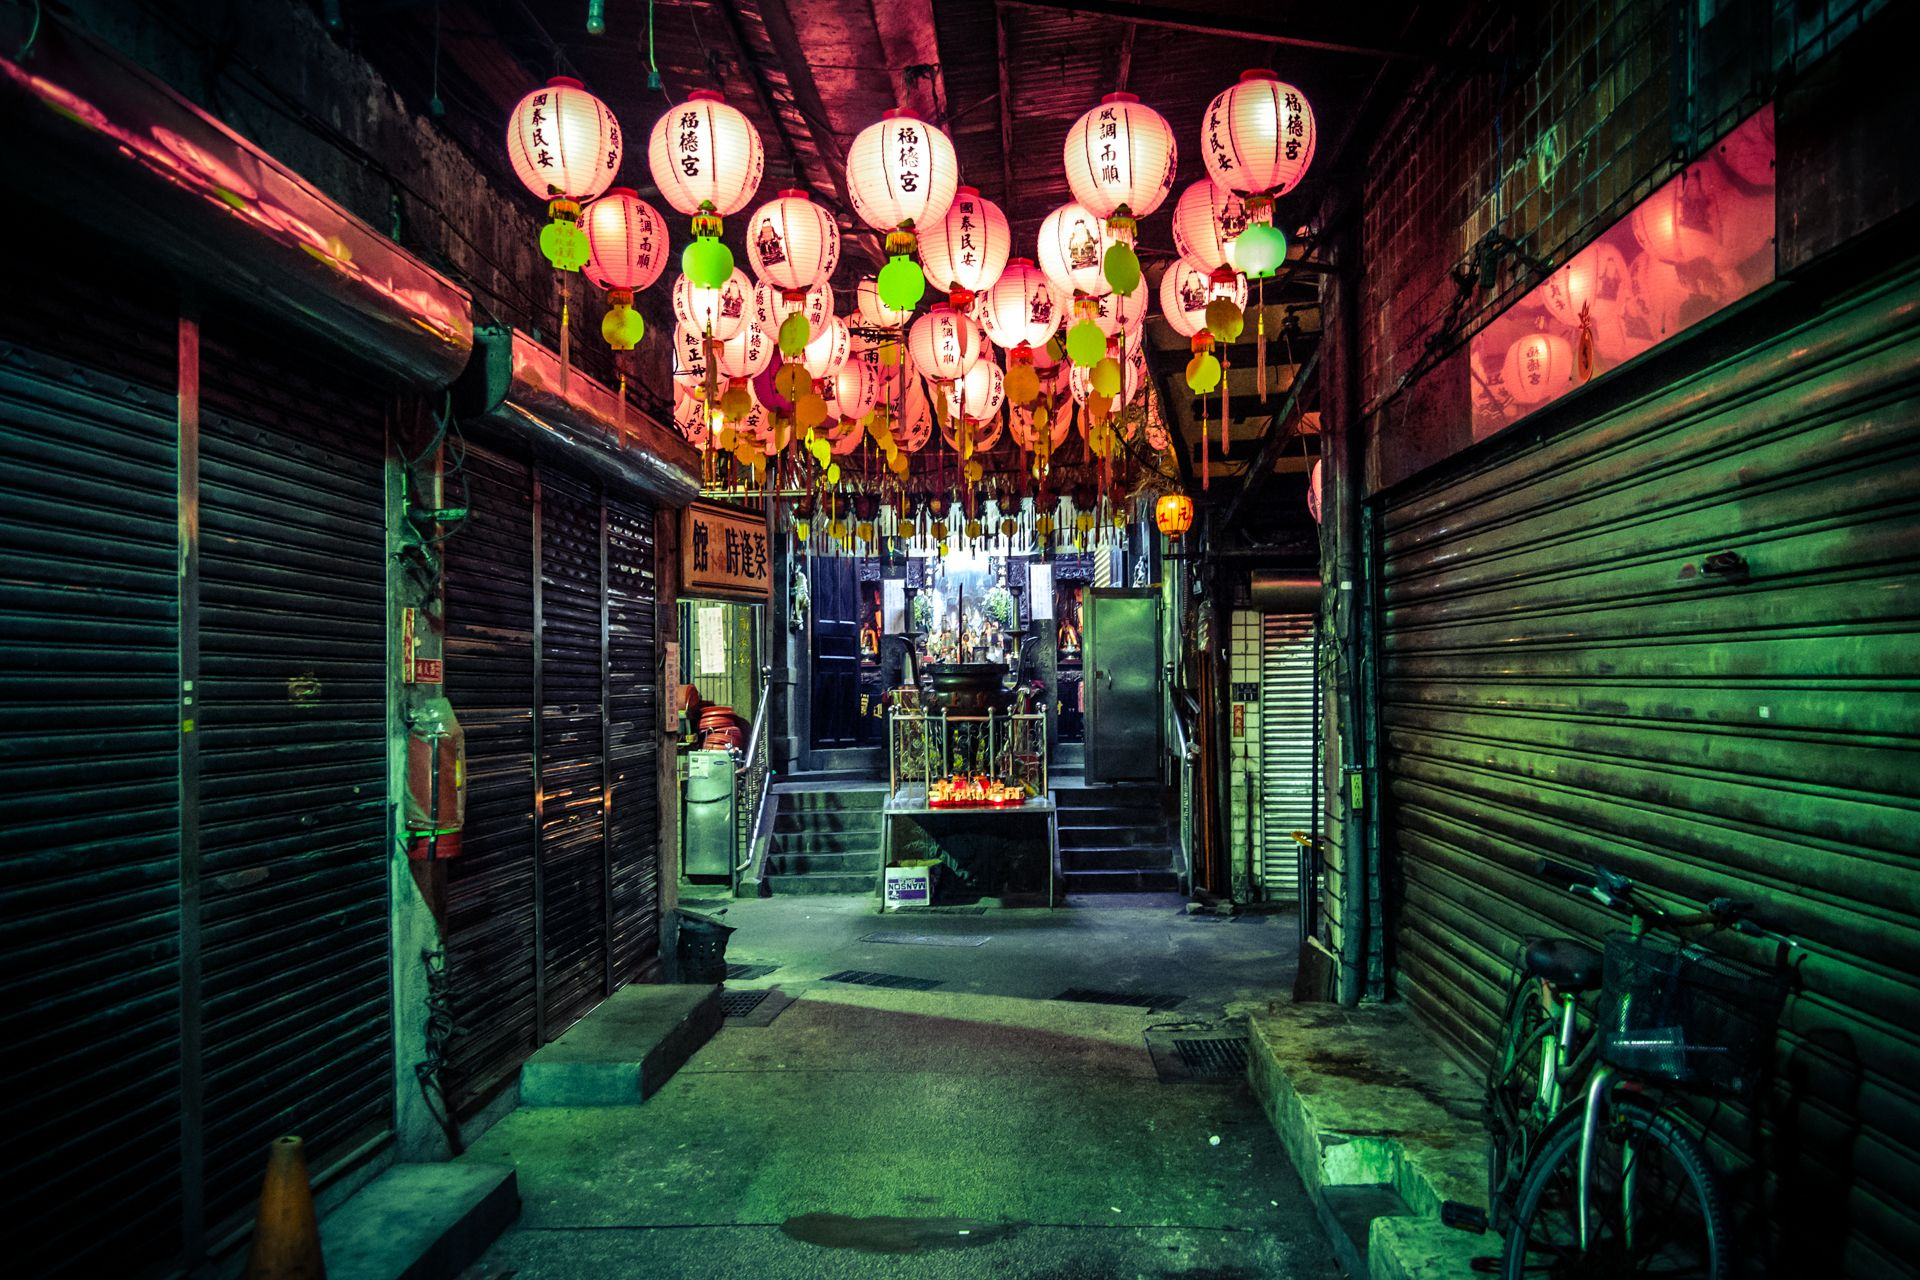 cyberpunk taiwan的圖片搜尋結果 Dark alleyway, Alleyway, Temple